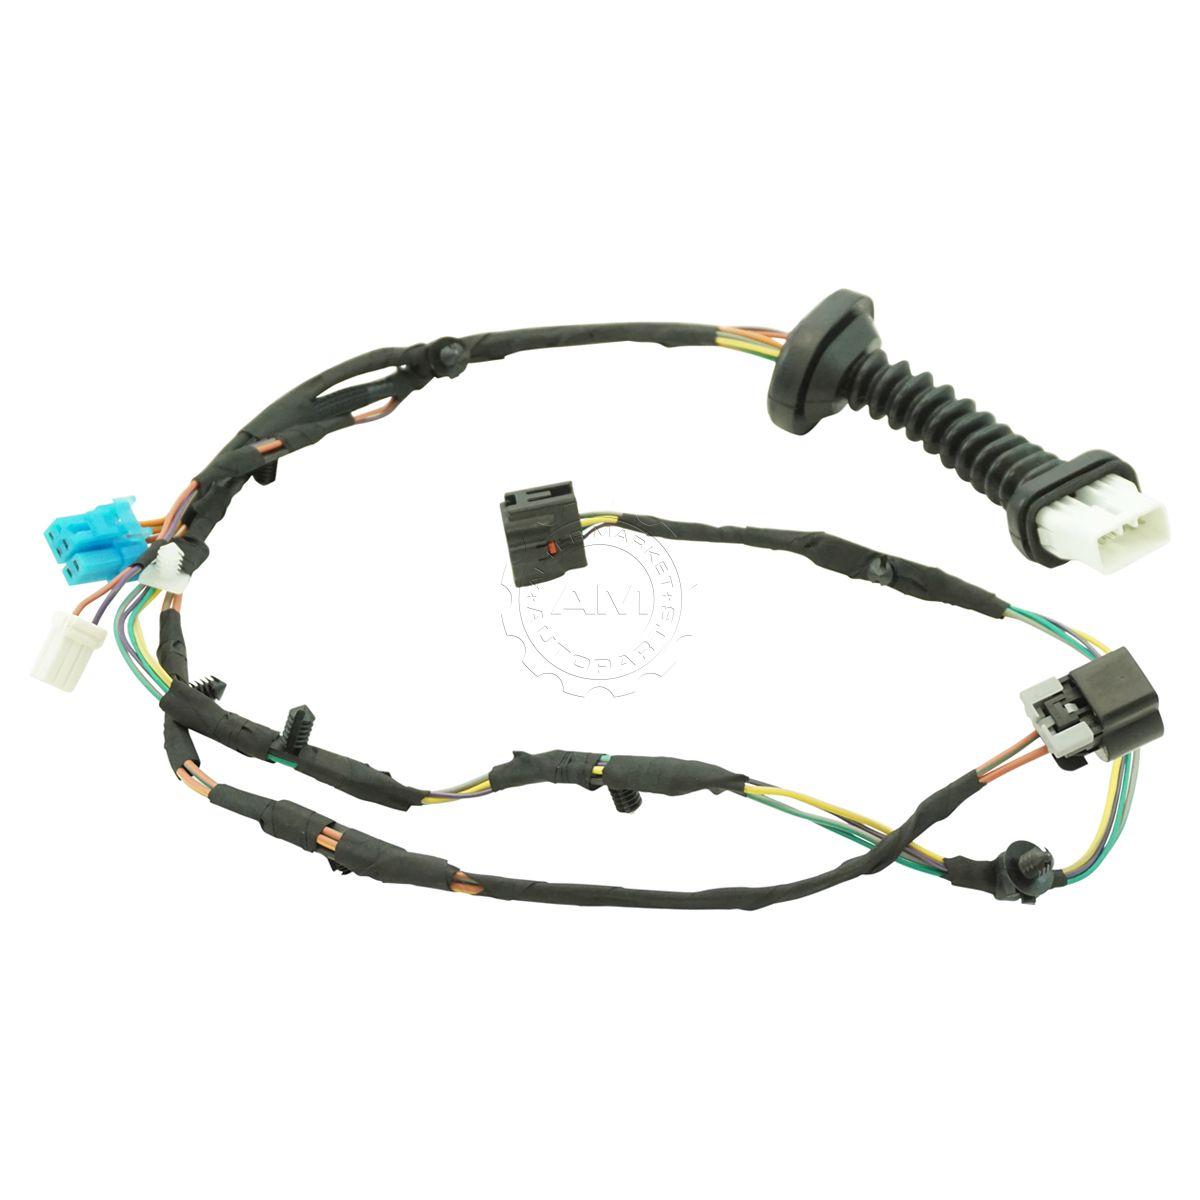 Dorman 645 506 Rear Door Wiring Harness For 04 05 Dodge Ram Pickup Truck